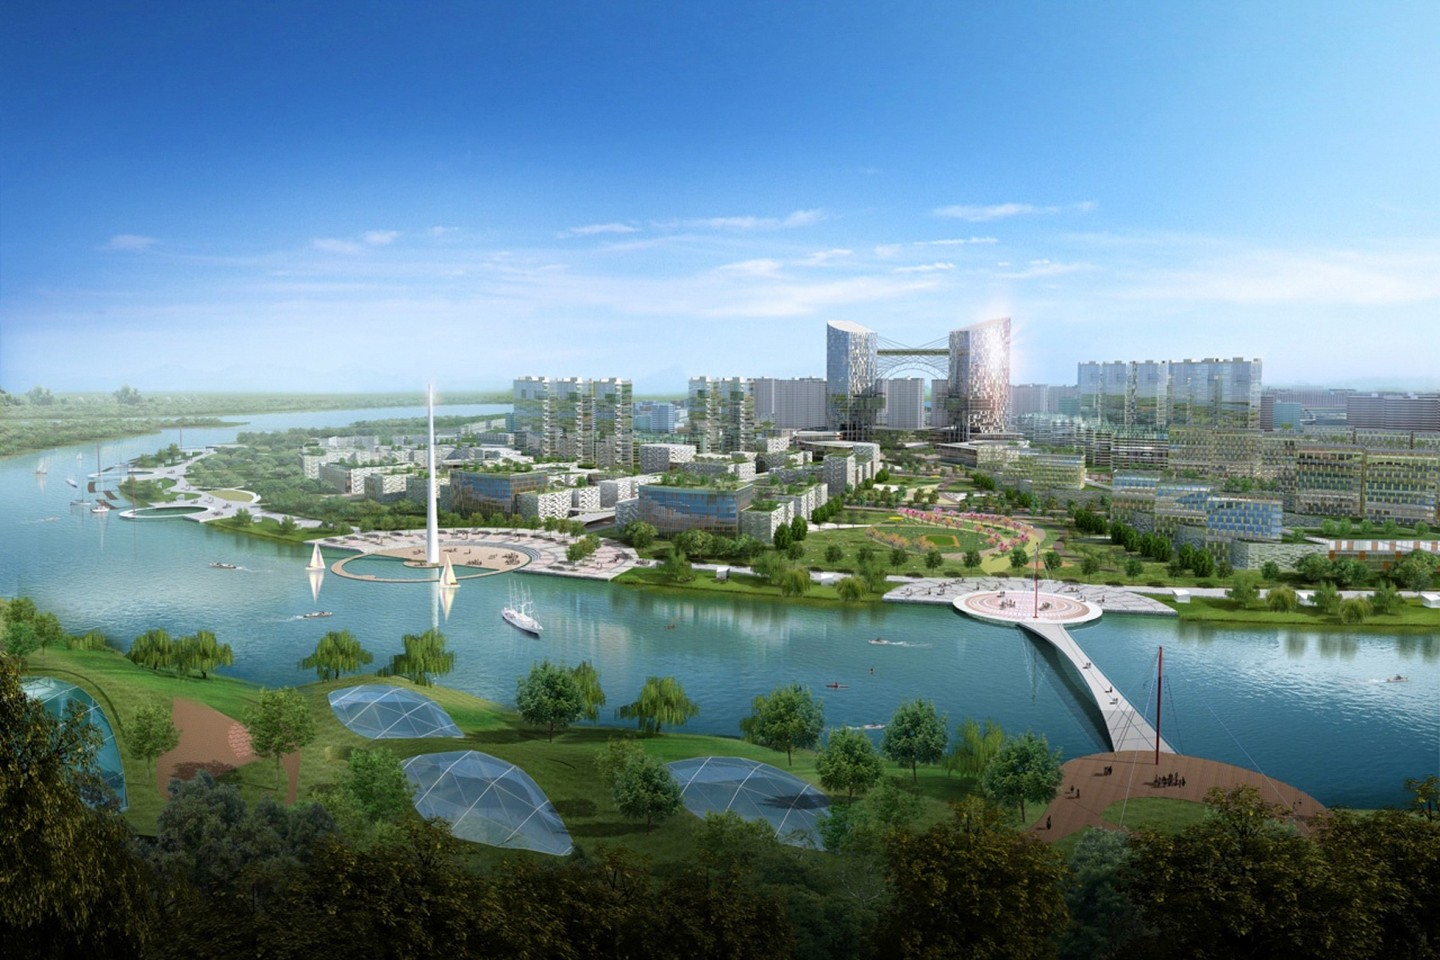 Artist's impression of Tianjin Eco-City in China. The city will create a world-class model, bringing in top-notch expertise, innovative ideas and best practices from Singapore, China and the rest of the world. (Keppel)